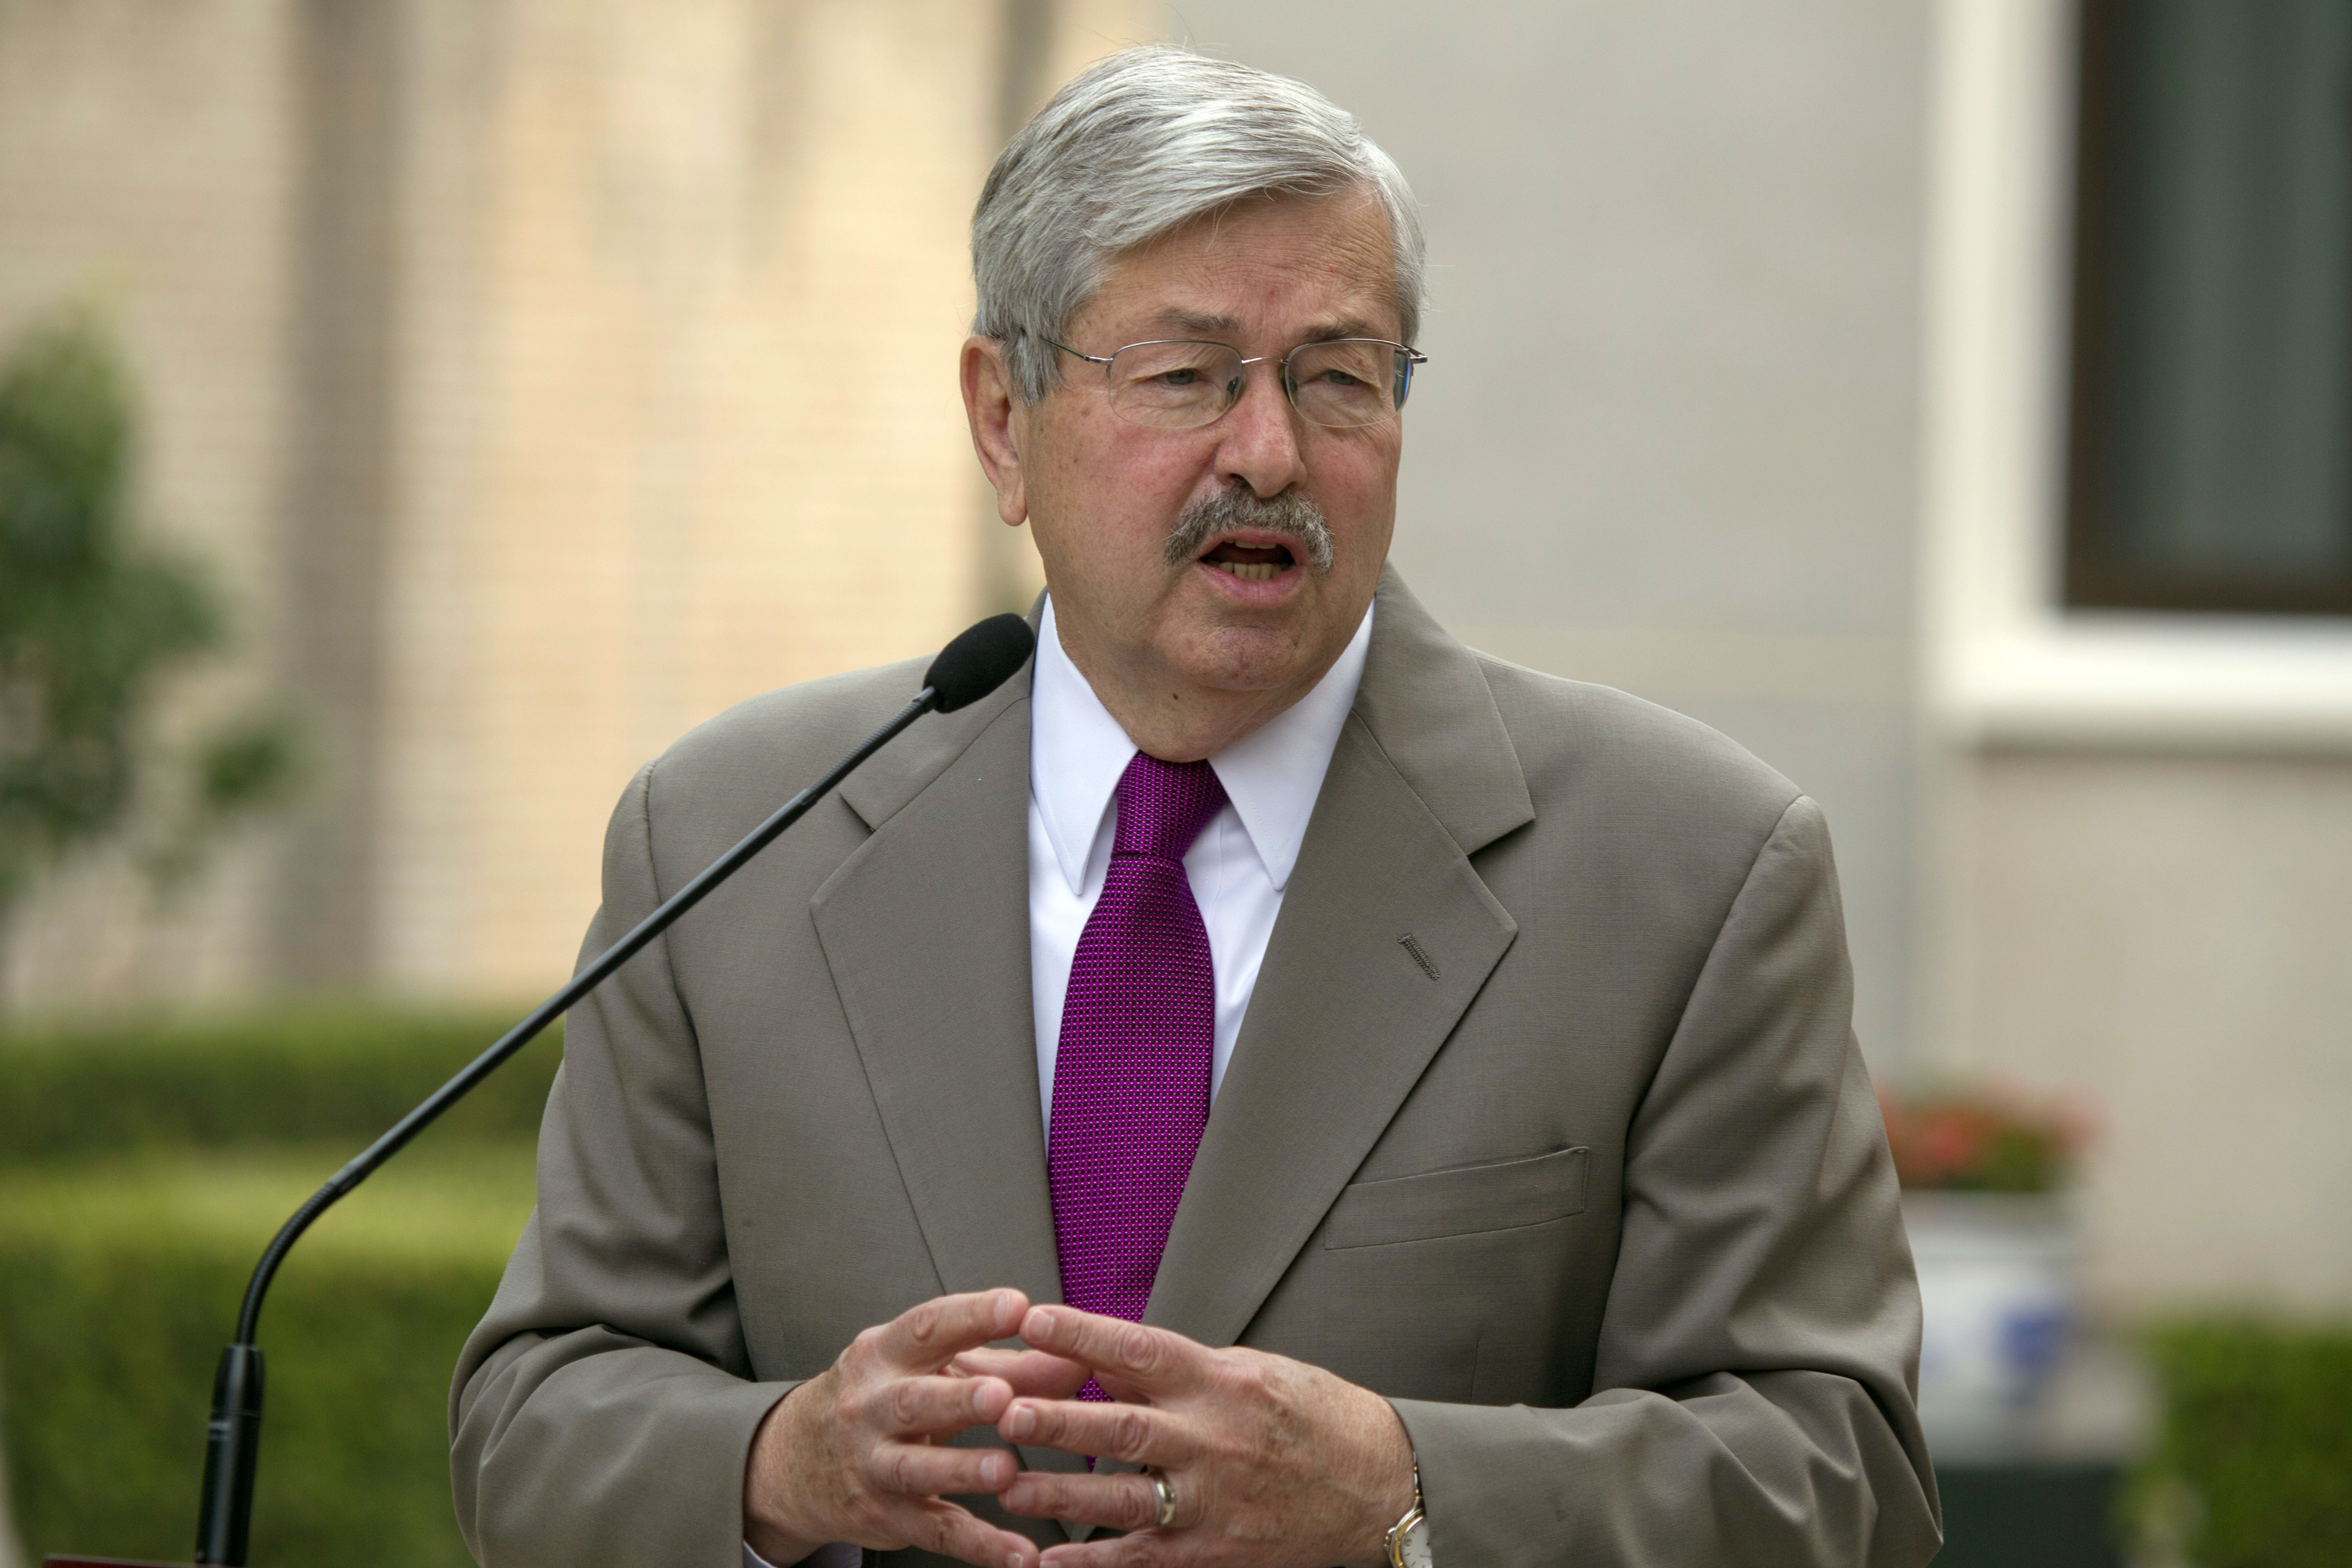 U.S. Ambassador to China Terry Branstad speaks to journalists at the Ambassador's residence in Beijing on June 28, 2017.